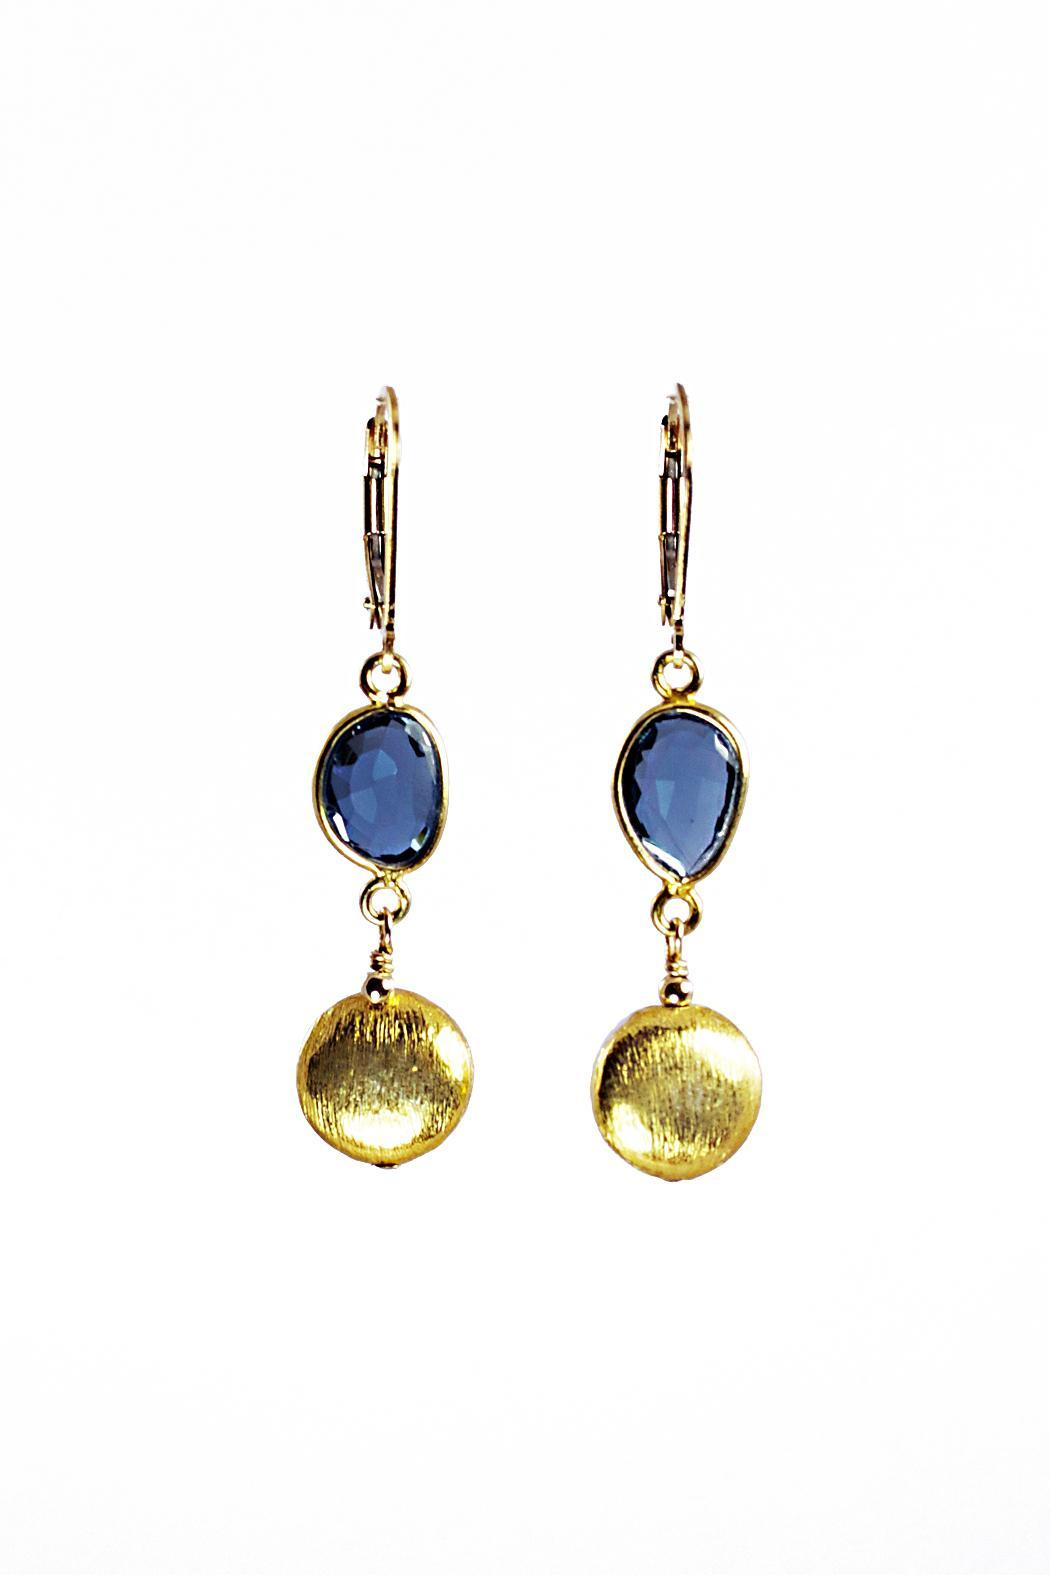 Melinda Lawton Jewelry London Blue Earrings - Main Image